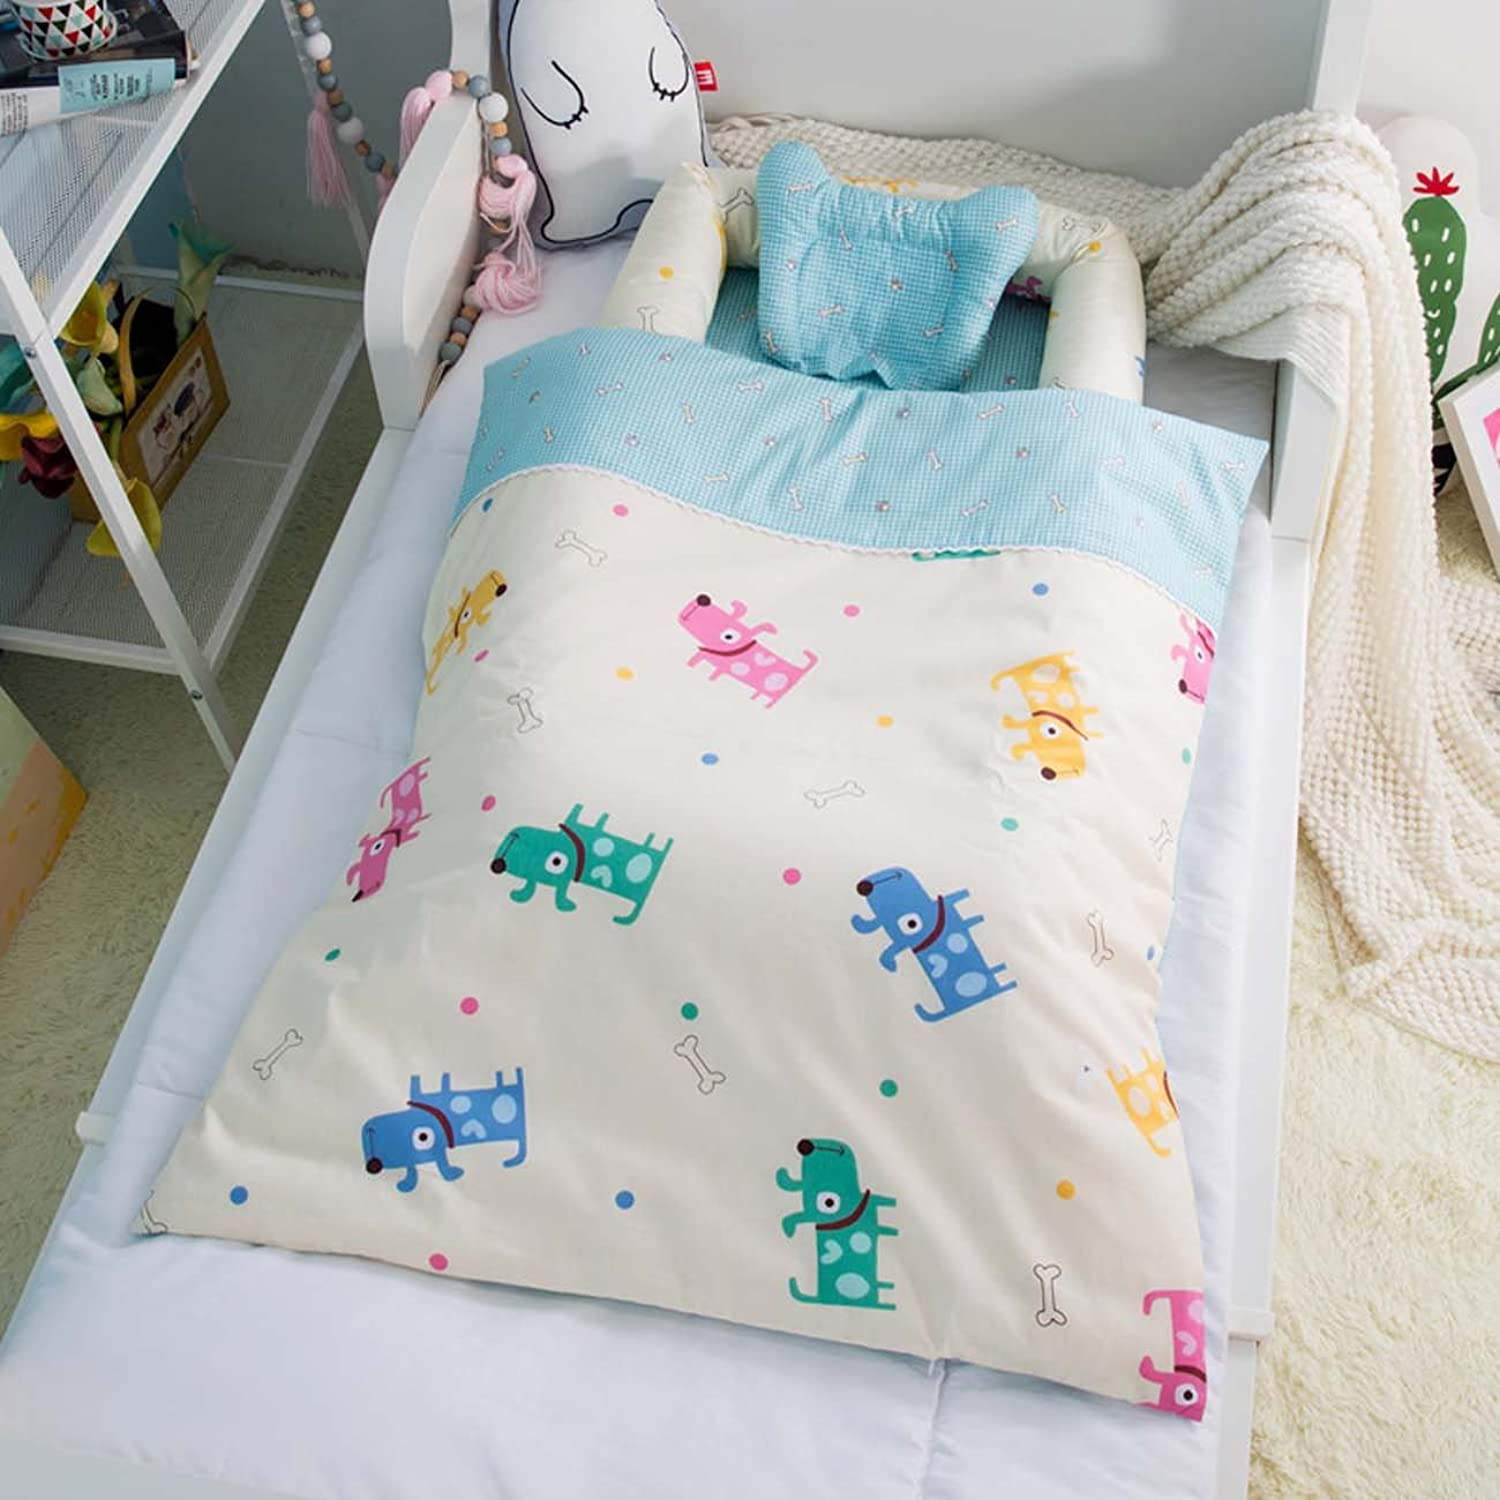 Cotton Detachable Baby Nest,Quilt and Pillow for 0-24 Months Baby (Rabbit), 3